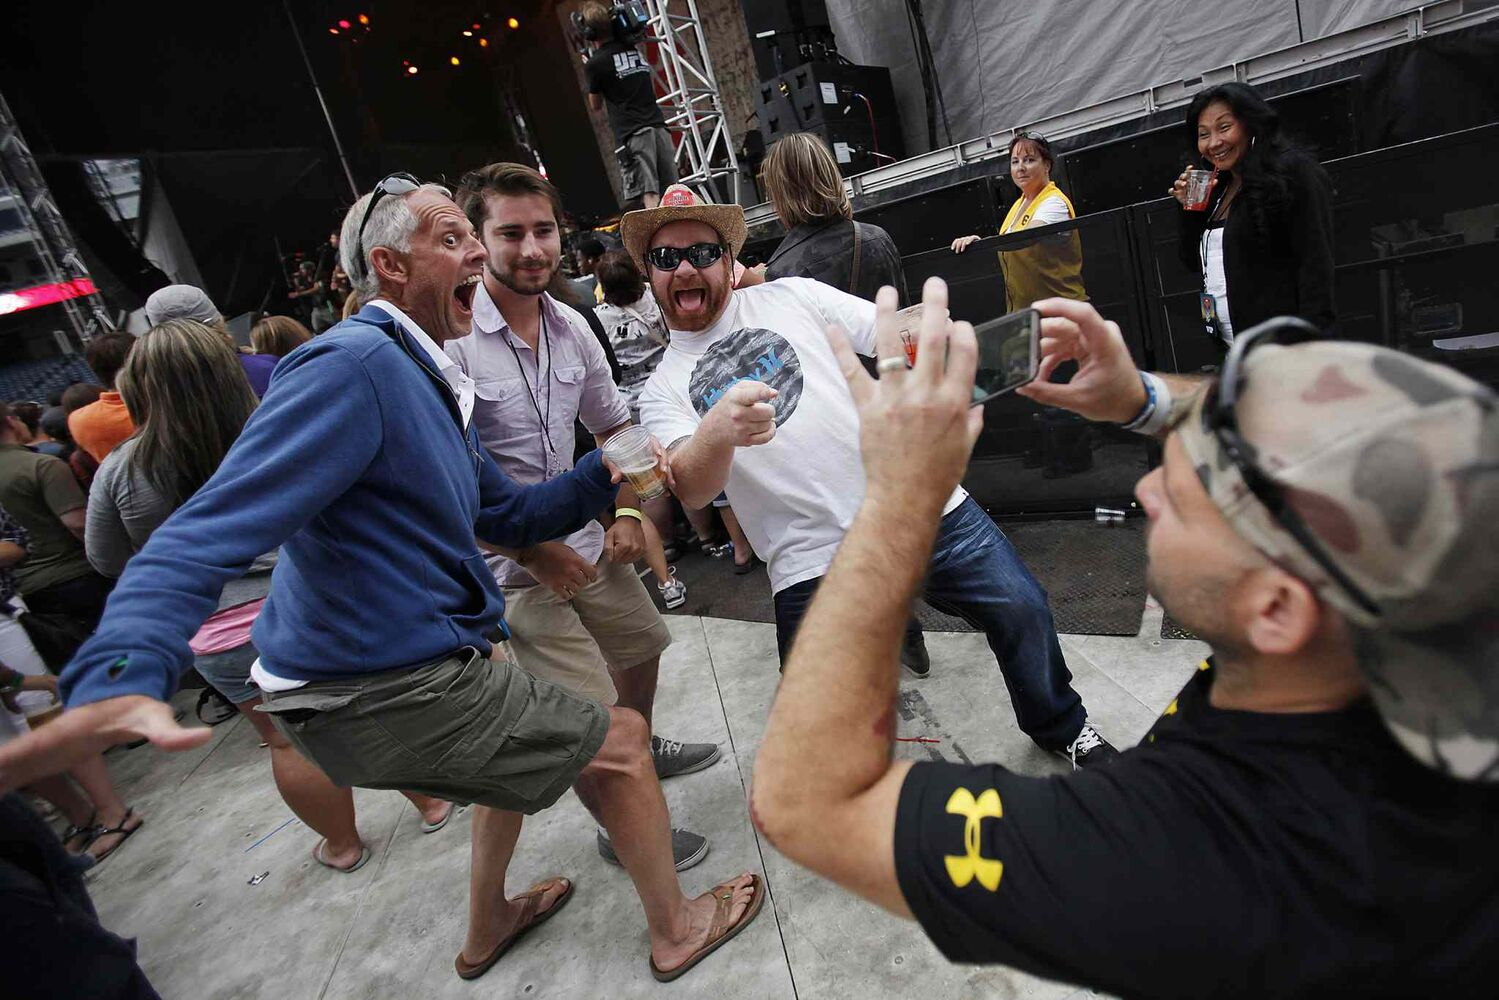 Fans get into Walk Off The Earth as they perform at Prairie Jam. (JOHN WOODS / WINNIPEG FREE PRESS)